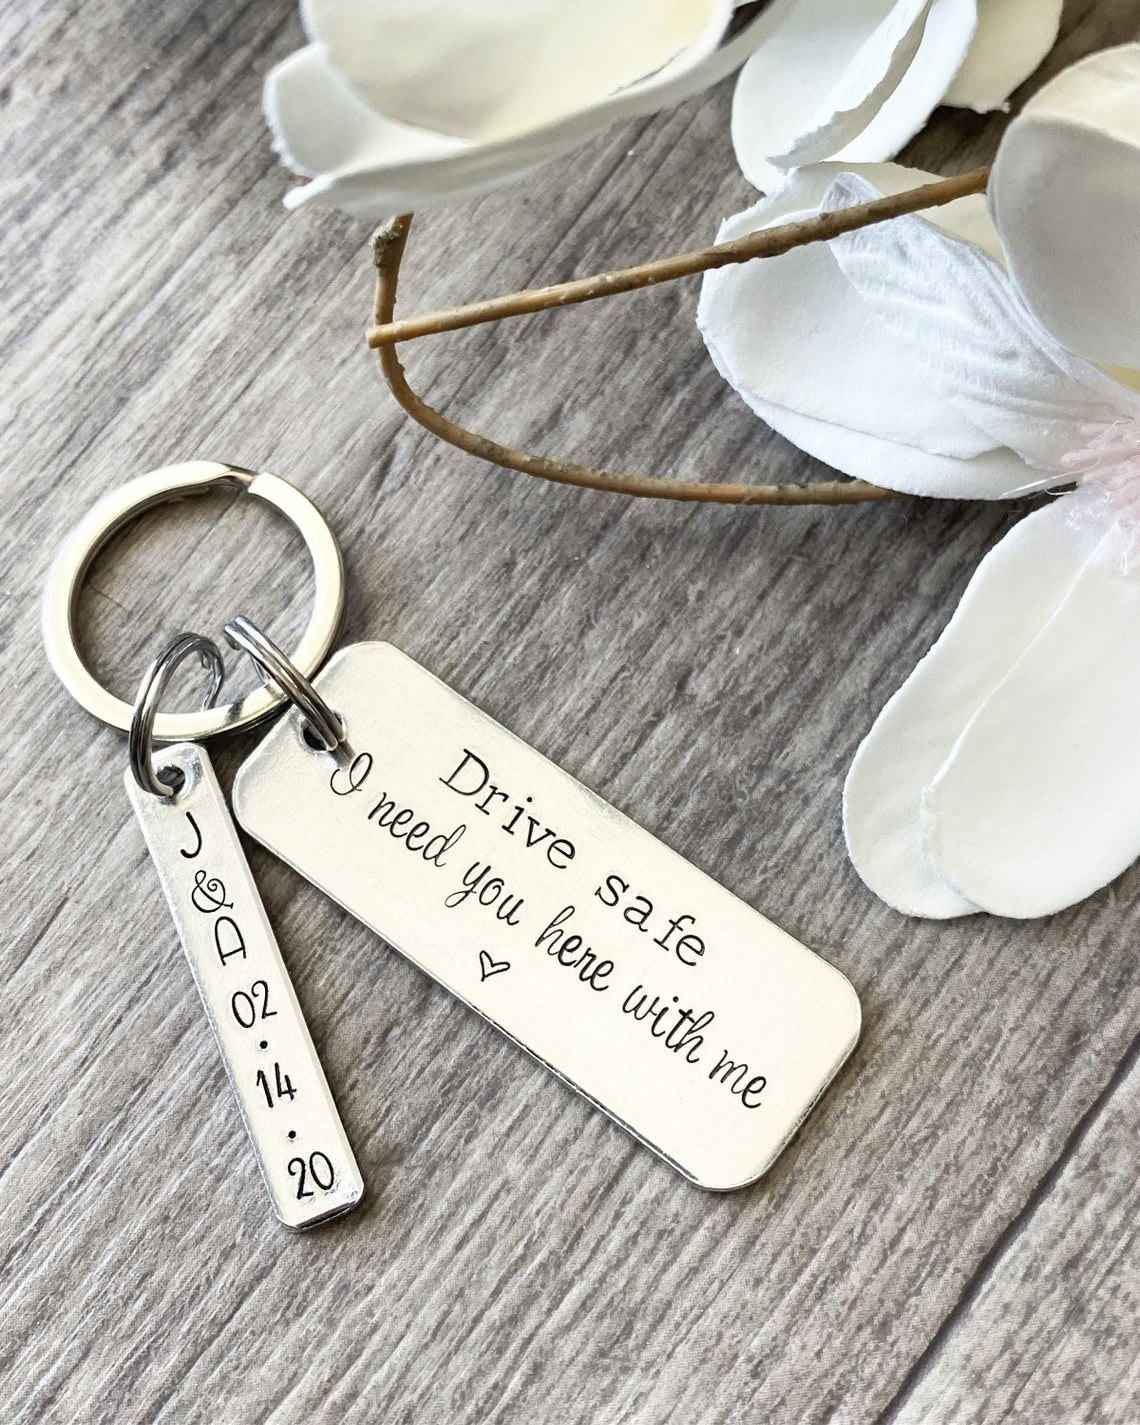 Two keychain charms with sweet messages on them